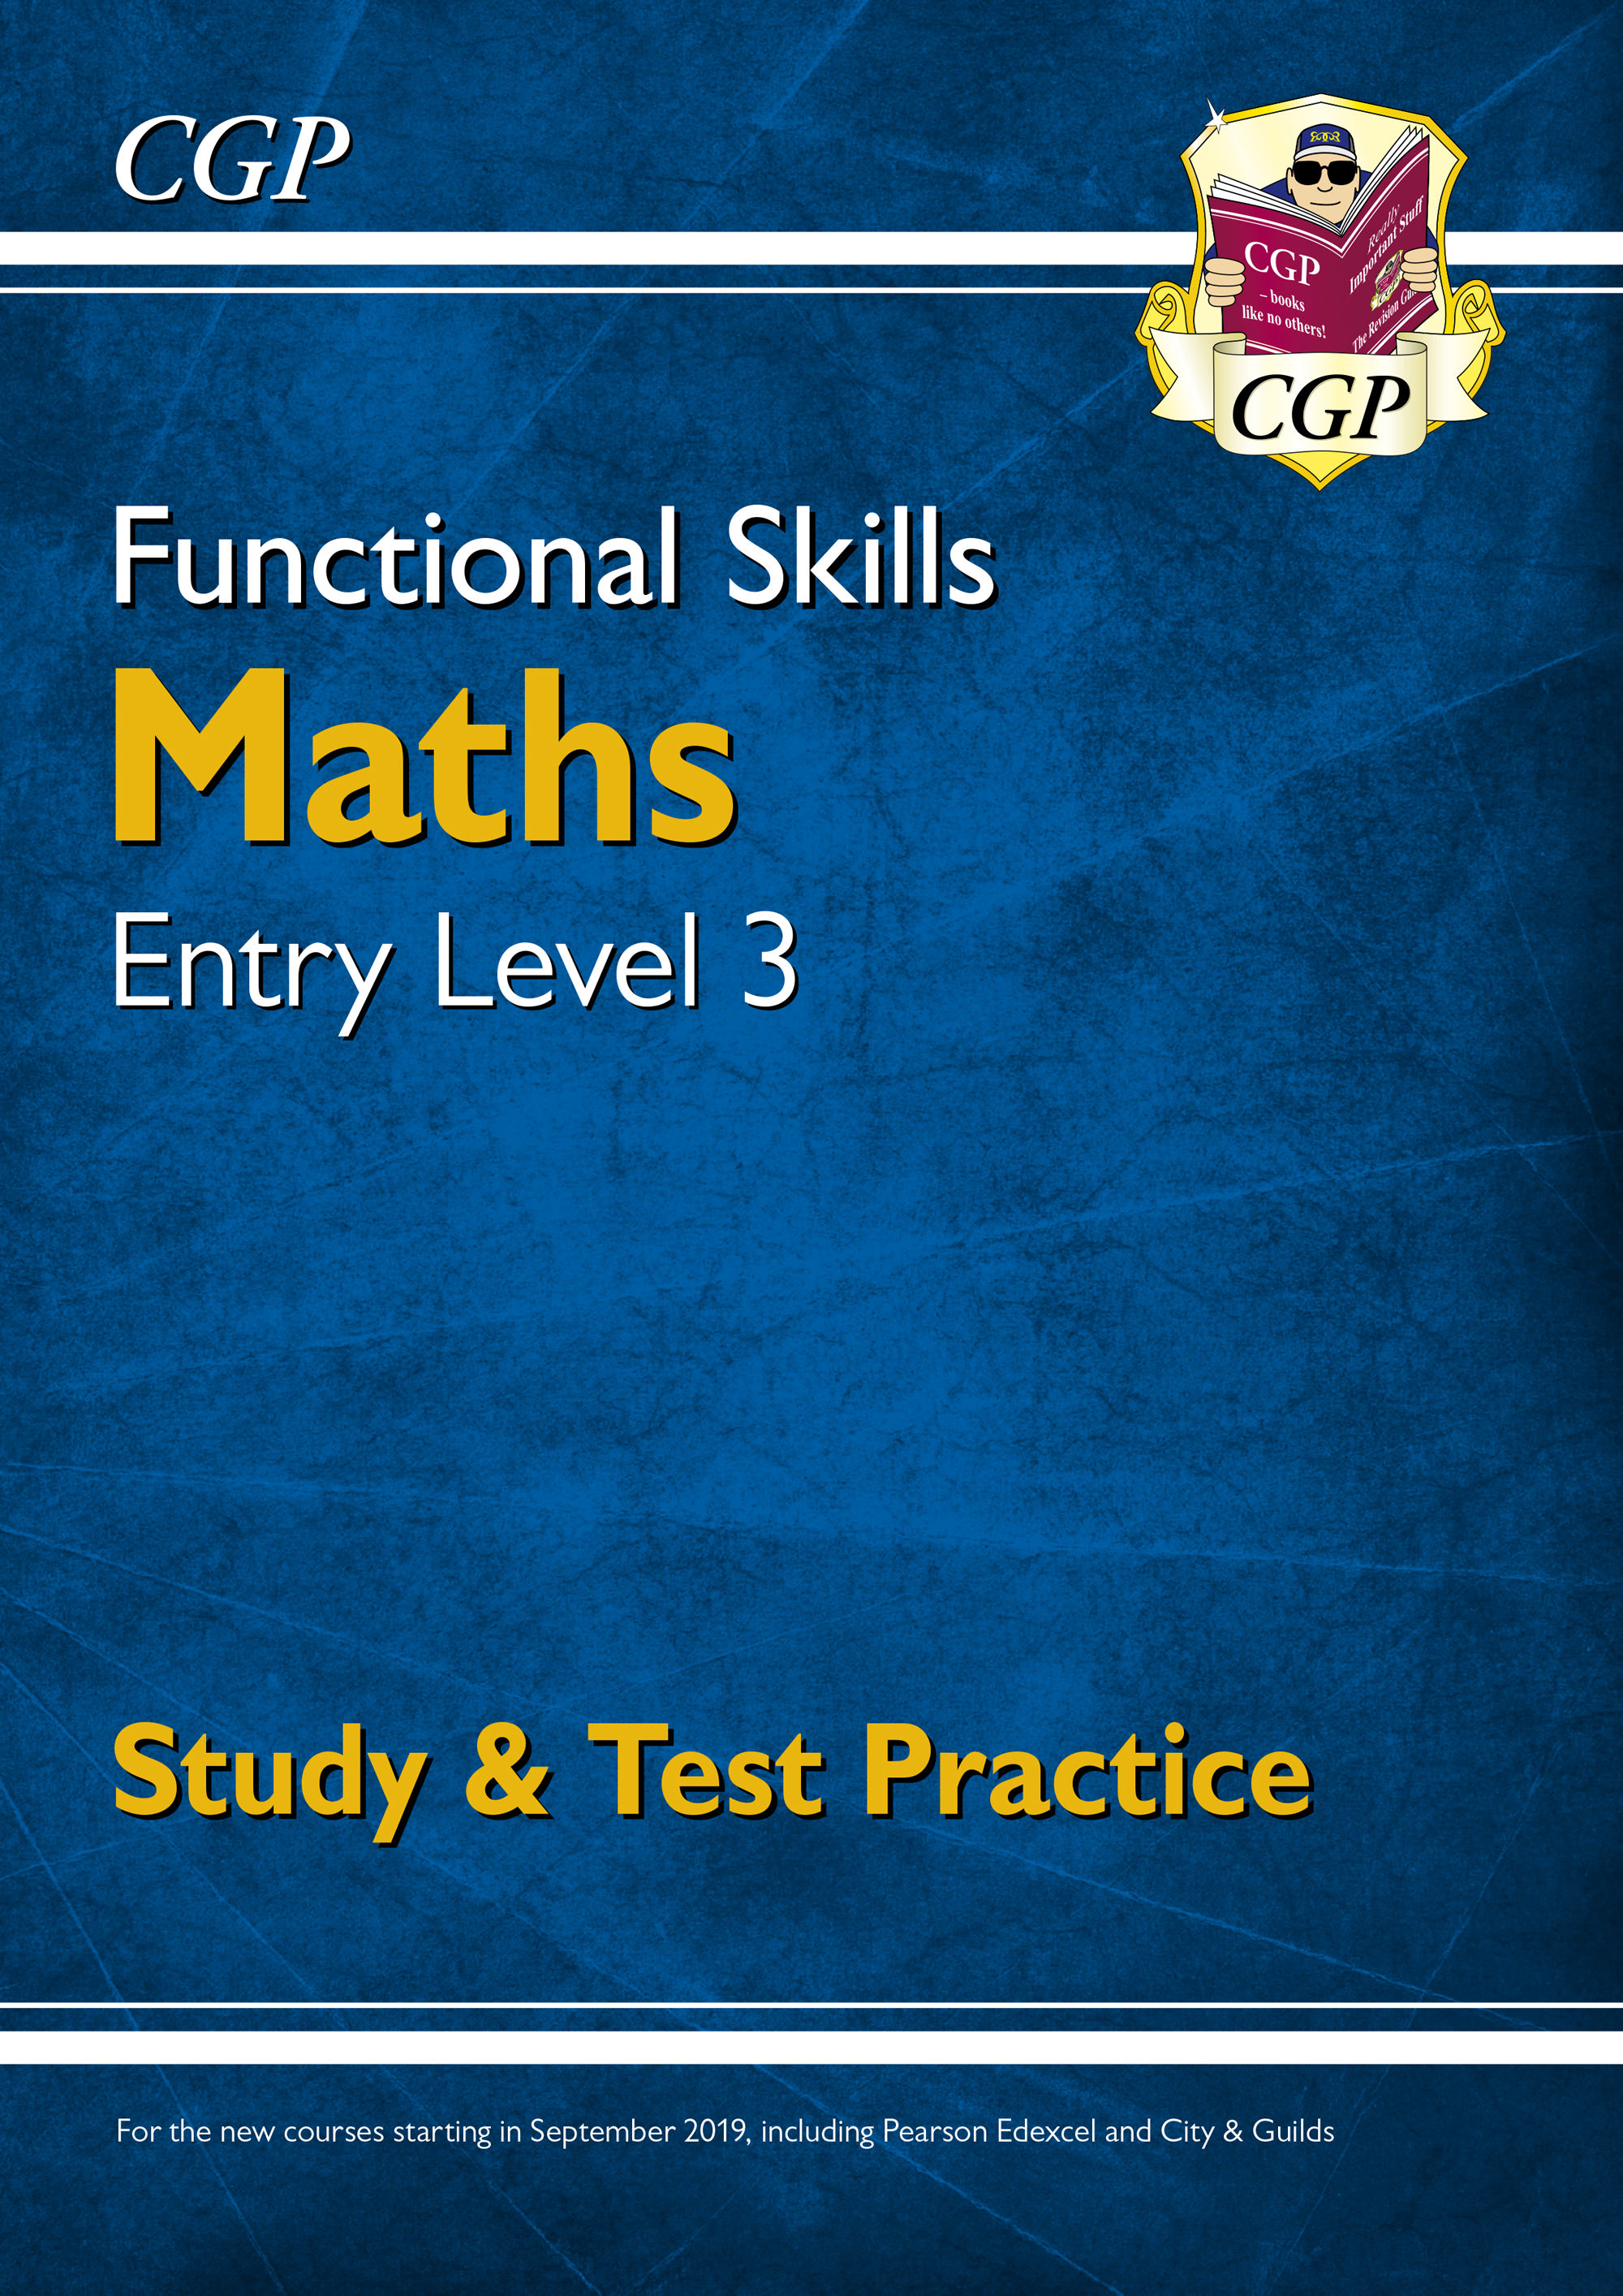 M3SRA3DK - New Functional Skills Maths Entry Level 3 - Study & Test Practice (for 2020 & beyond)